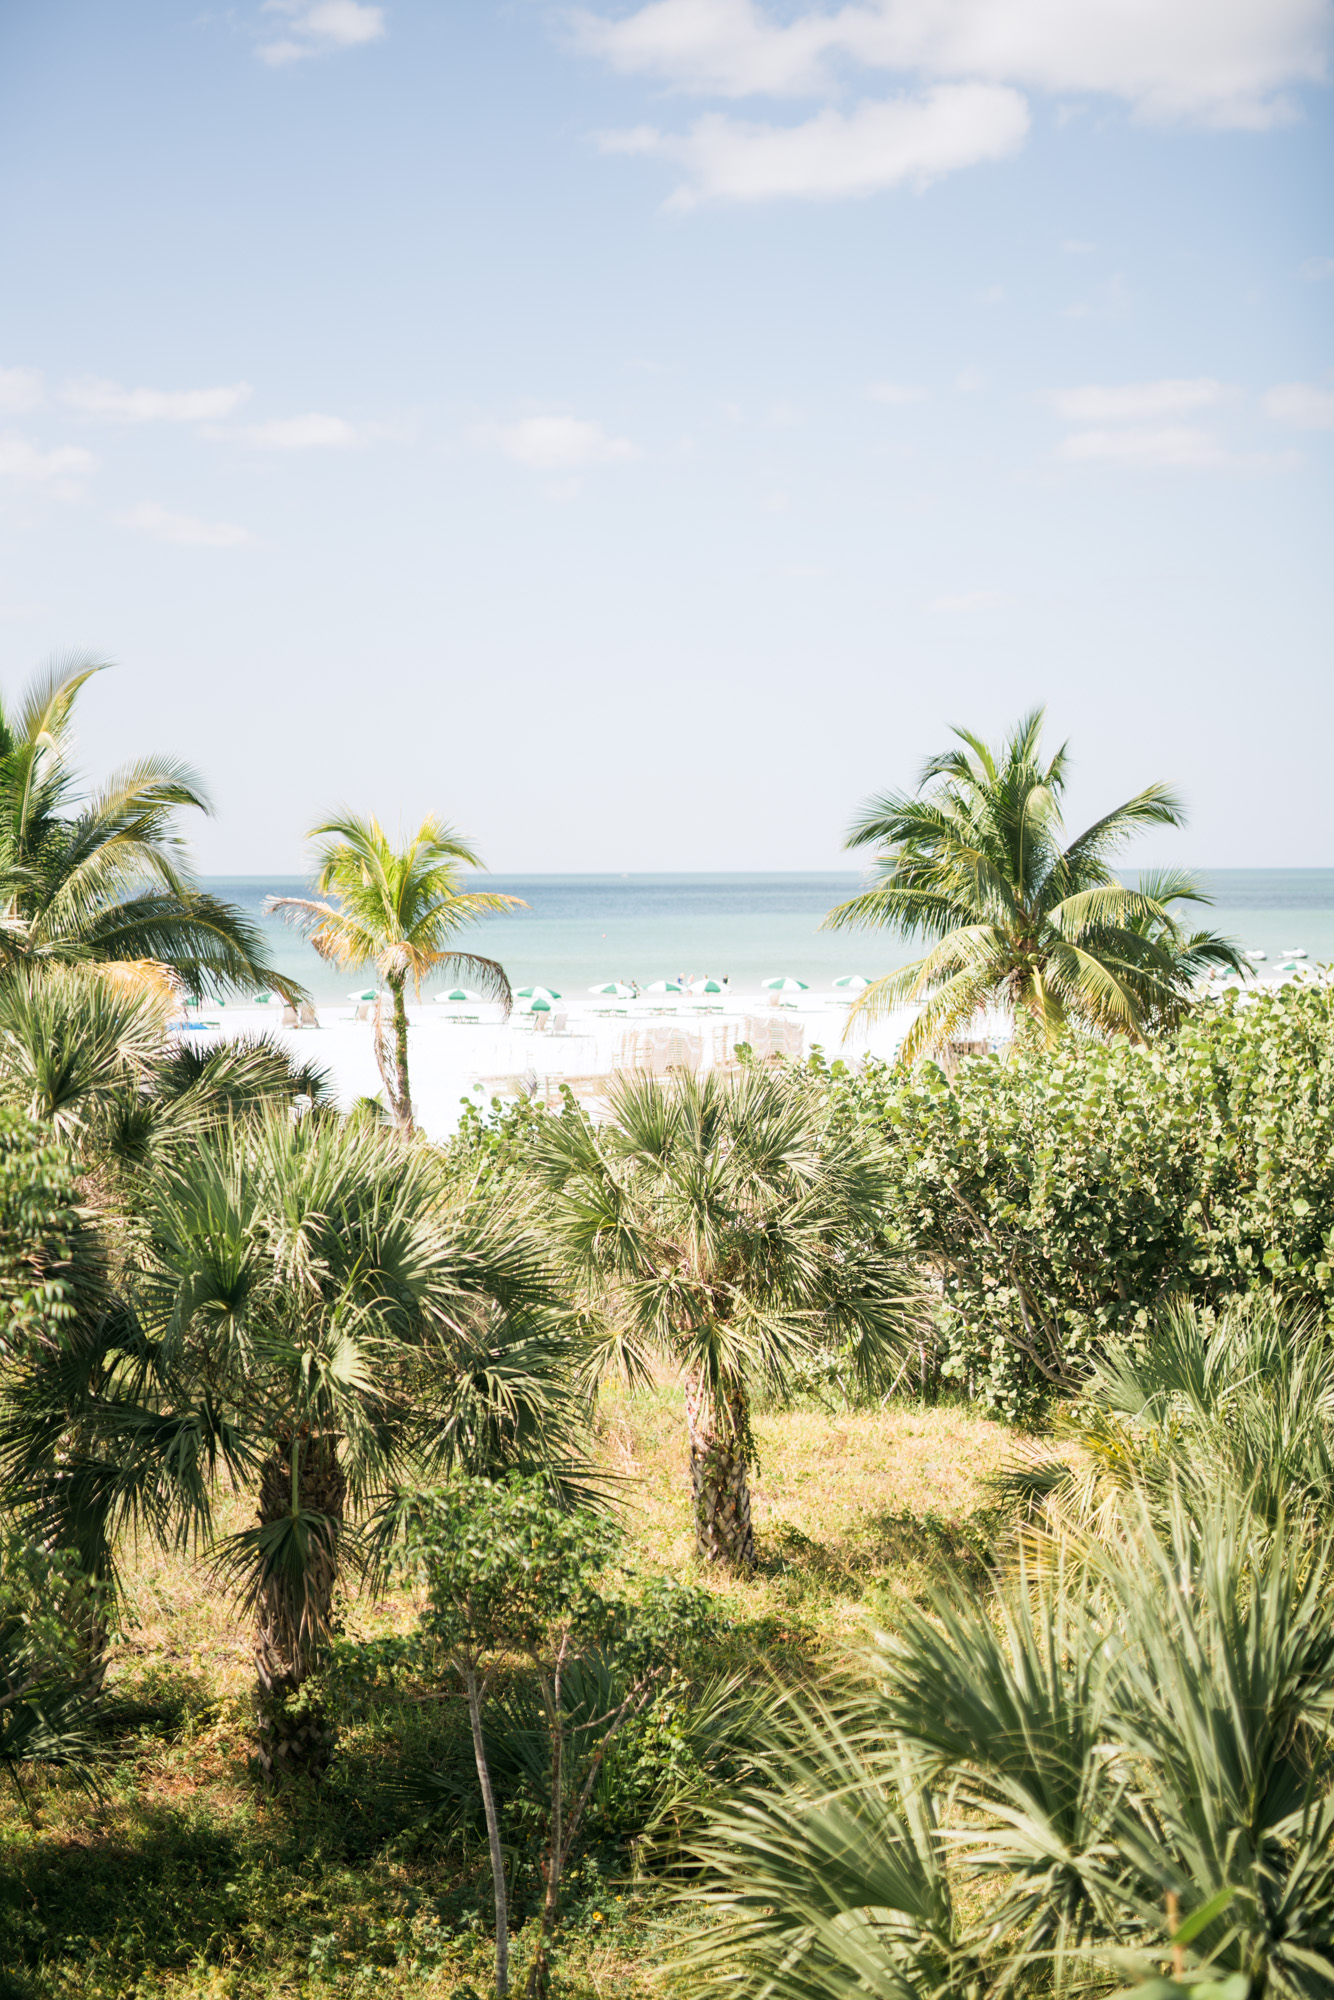 marco-beach-ocean-resort-naples-florida-wedding-photographer-hunter-ryan-photo-04478.jpg